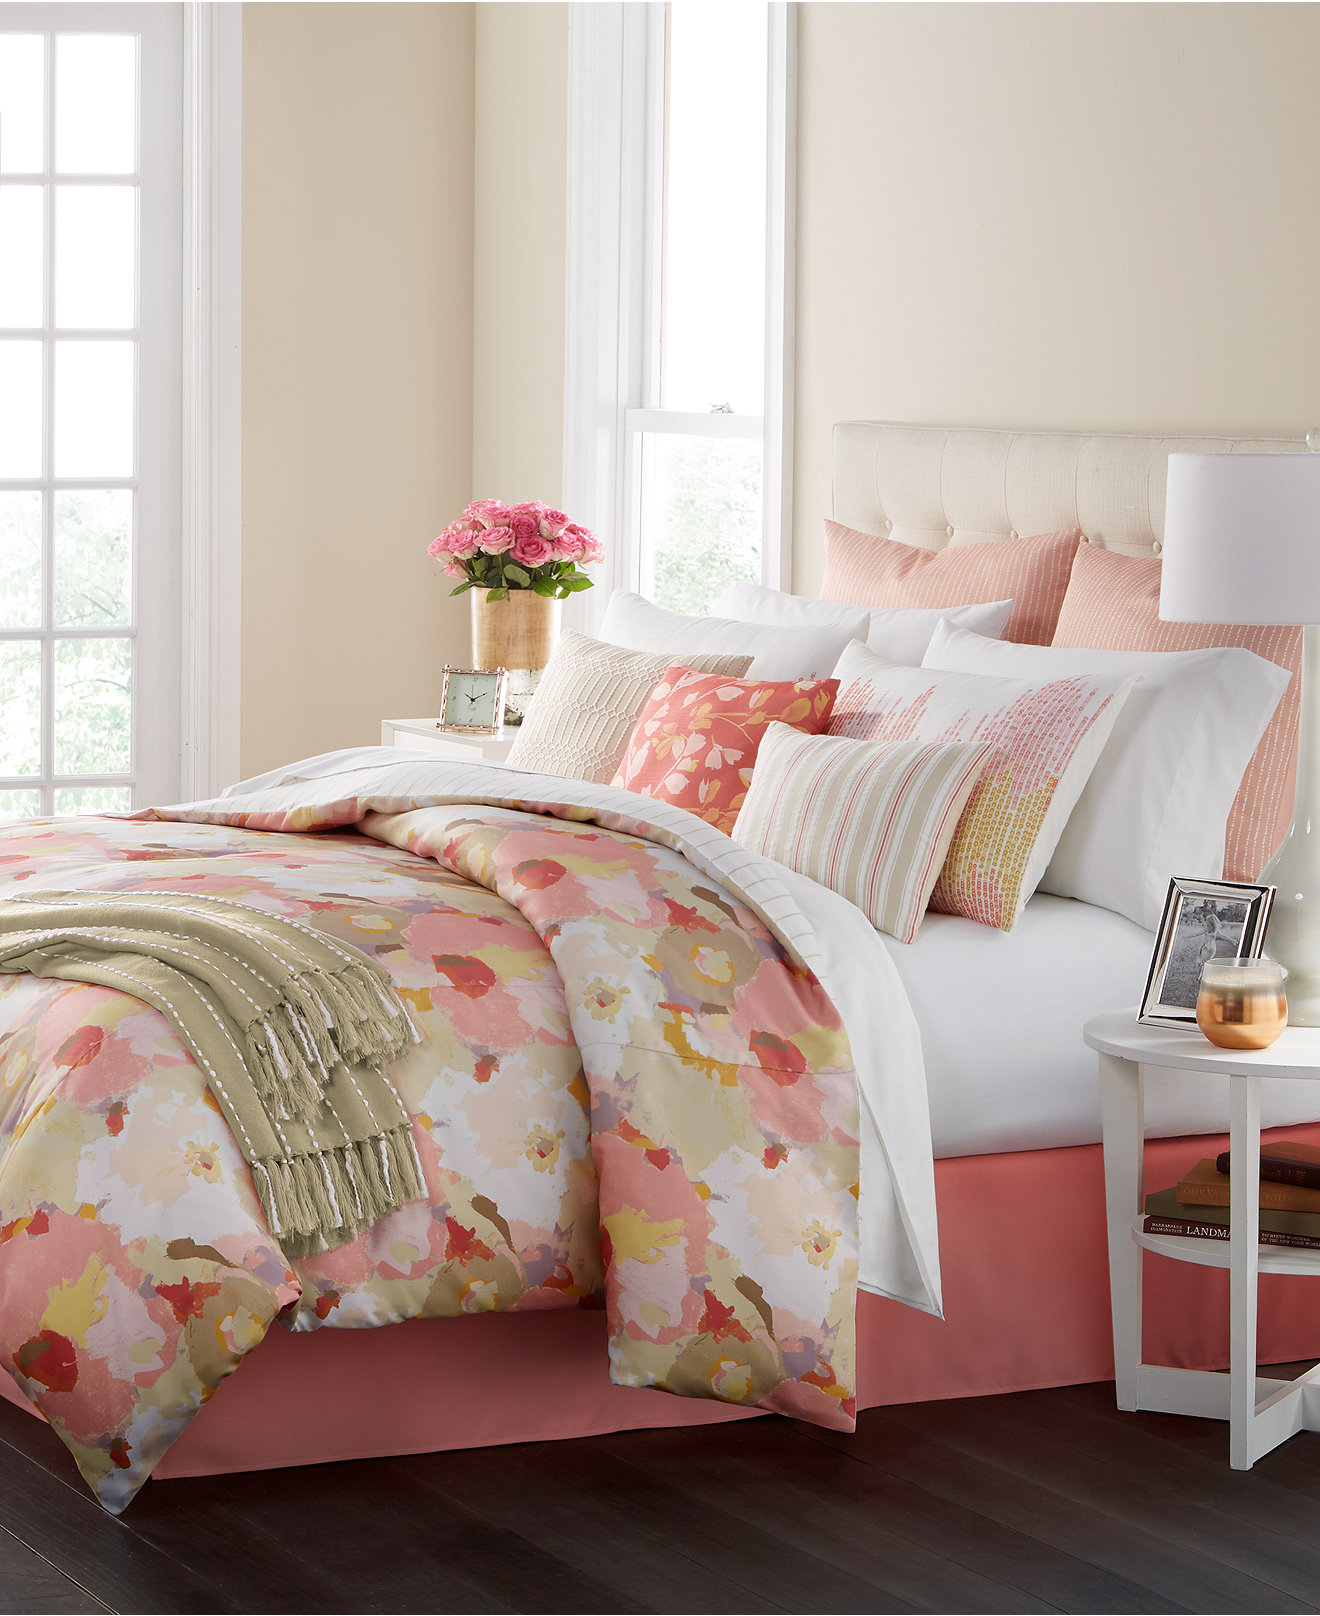 King Bedroom Bedding Sets Bed In A Bag And Comforter Sets Queen King More Macys